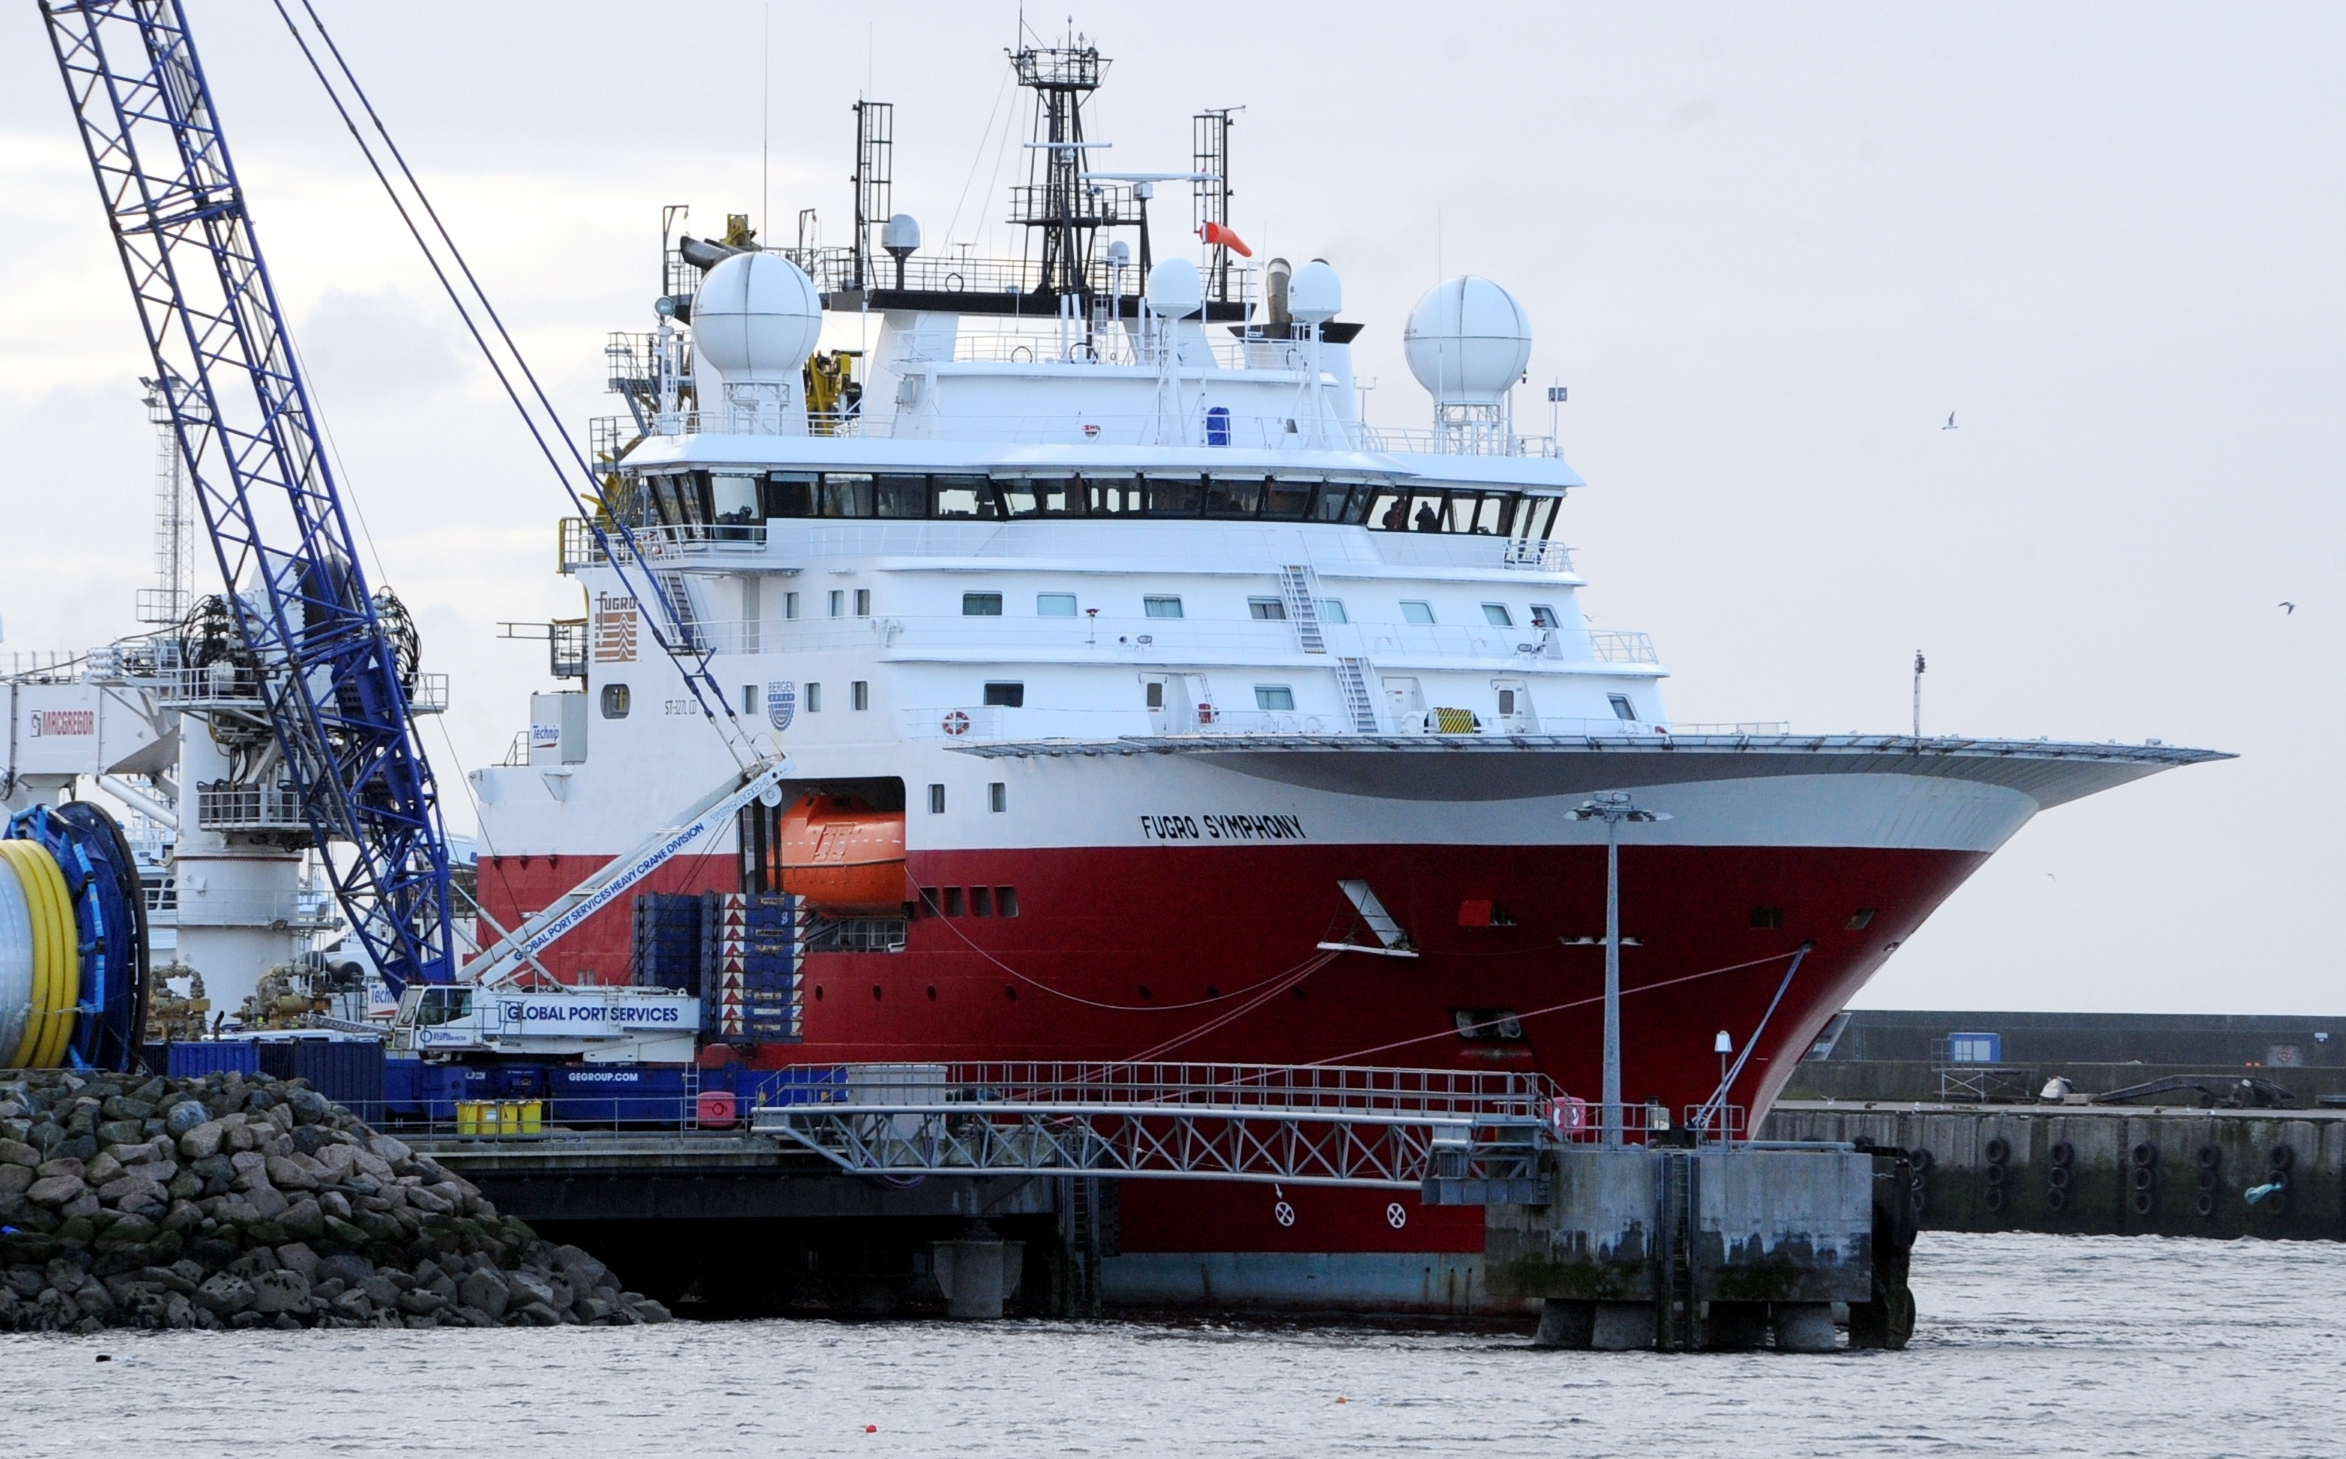 The Furgo Symphony in Peterhead harbour this morning following the fire.